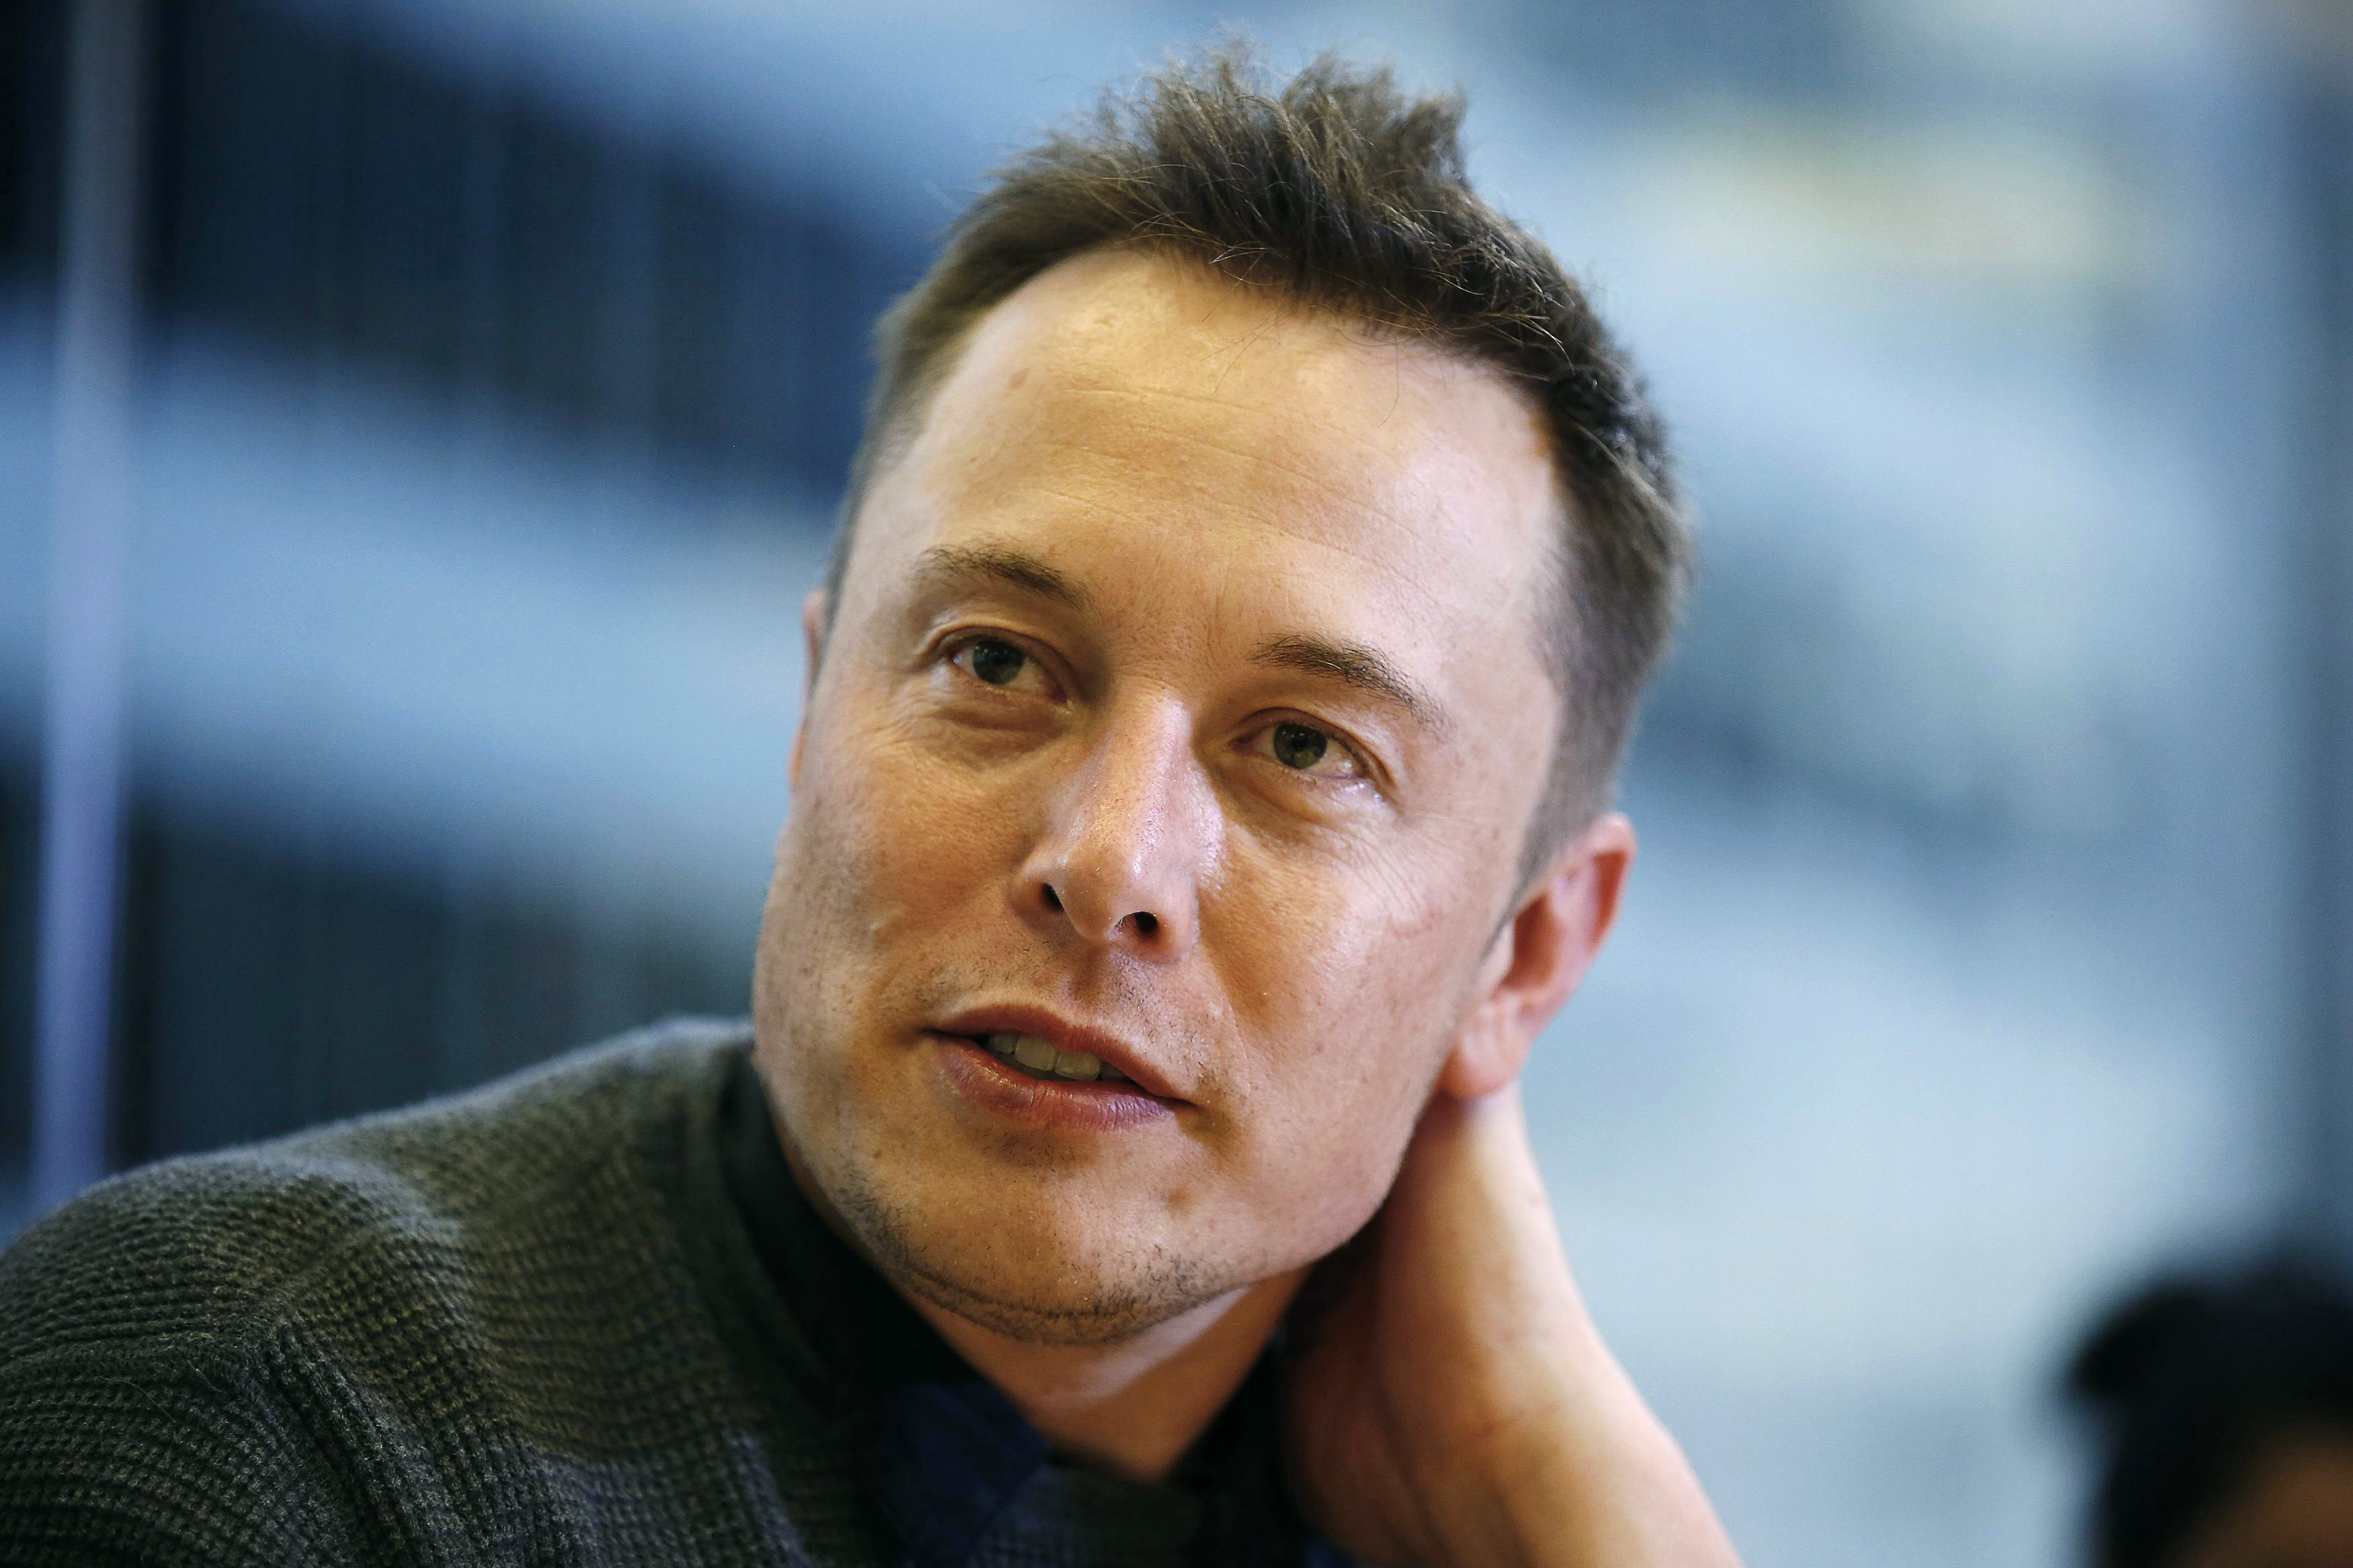 Elon Musk, Chief Executive of Tesla Motors and SpaceX, attends the Reuters Global Technology Summit in San Francisco June 18, 2013. REUTERS/Stephen Lam (UNITED STATES - Tags: BUSINESS SCIENCE TECHNOLOGY TRANSPORT)